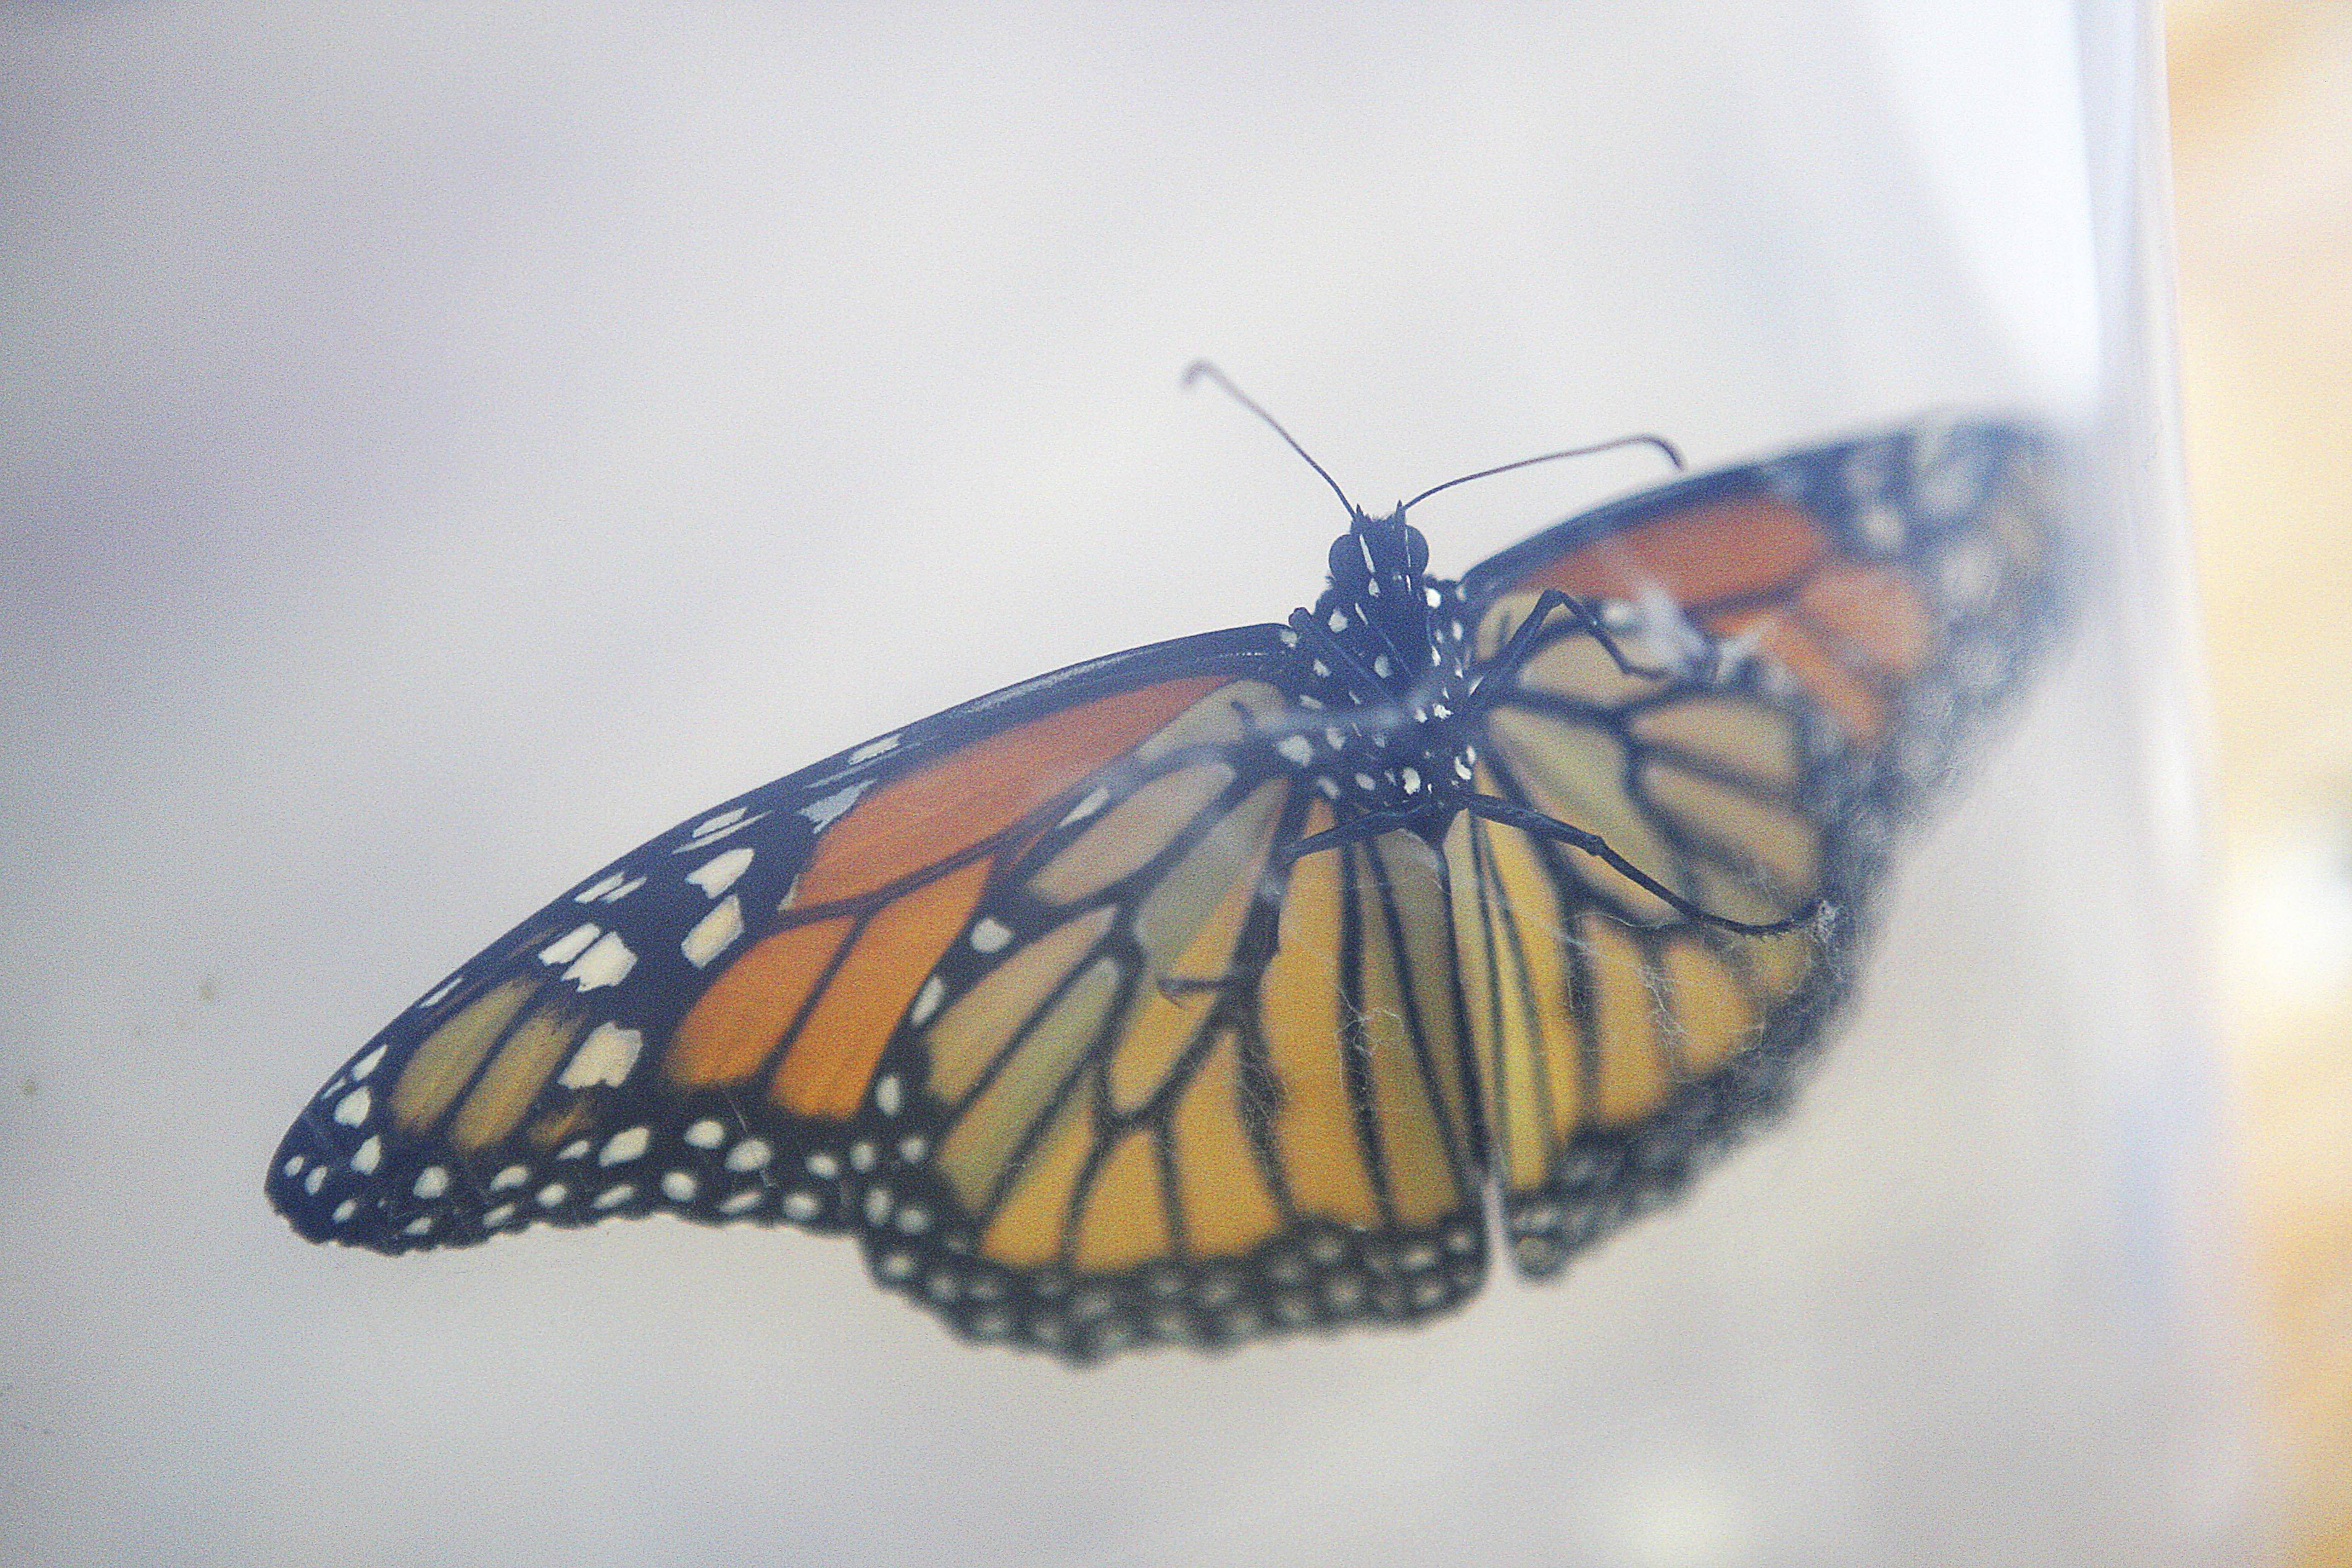 A male monarch butterfly is seen through the container. Janet Giesen is keeping him in after he emerged from the chrysalis in her garage. Giesen hopes her raising and releasing of 17 monarch butterflies makes some sort of impact on the world around her. (AP Photo/Daily Chronicle, Danielle Guerra) MANDATORY CREDIT